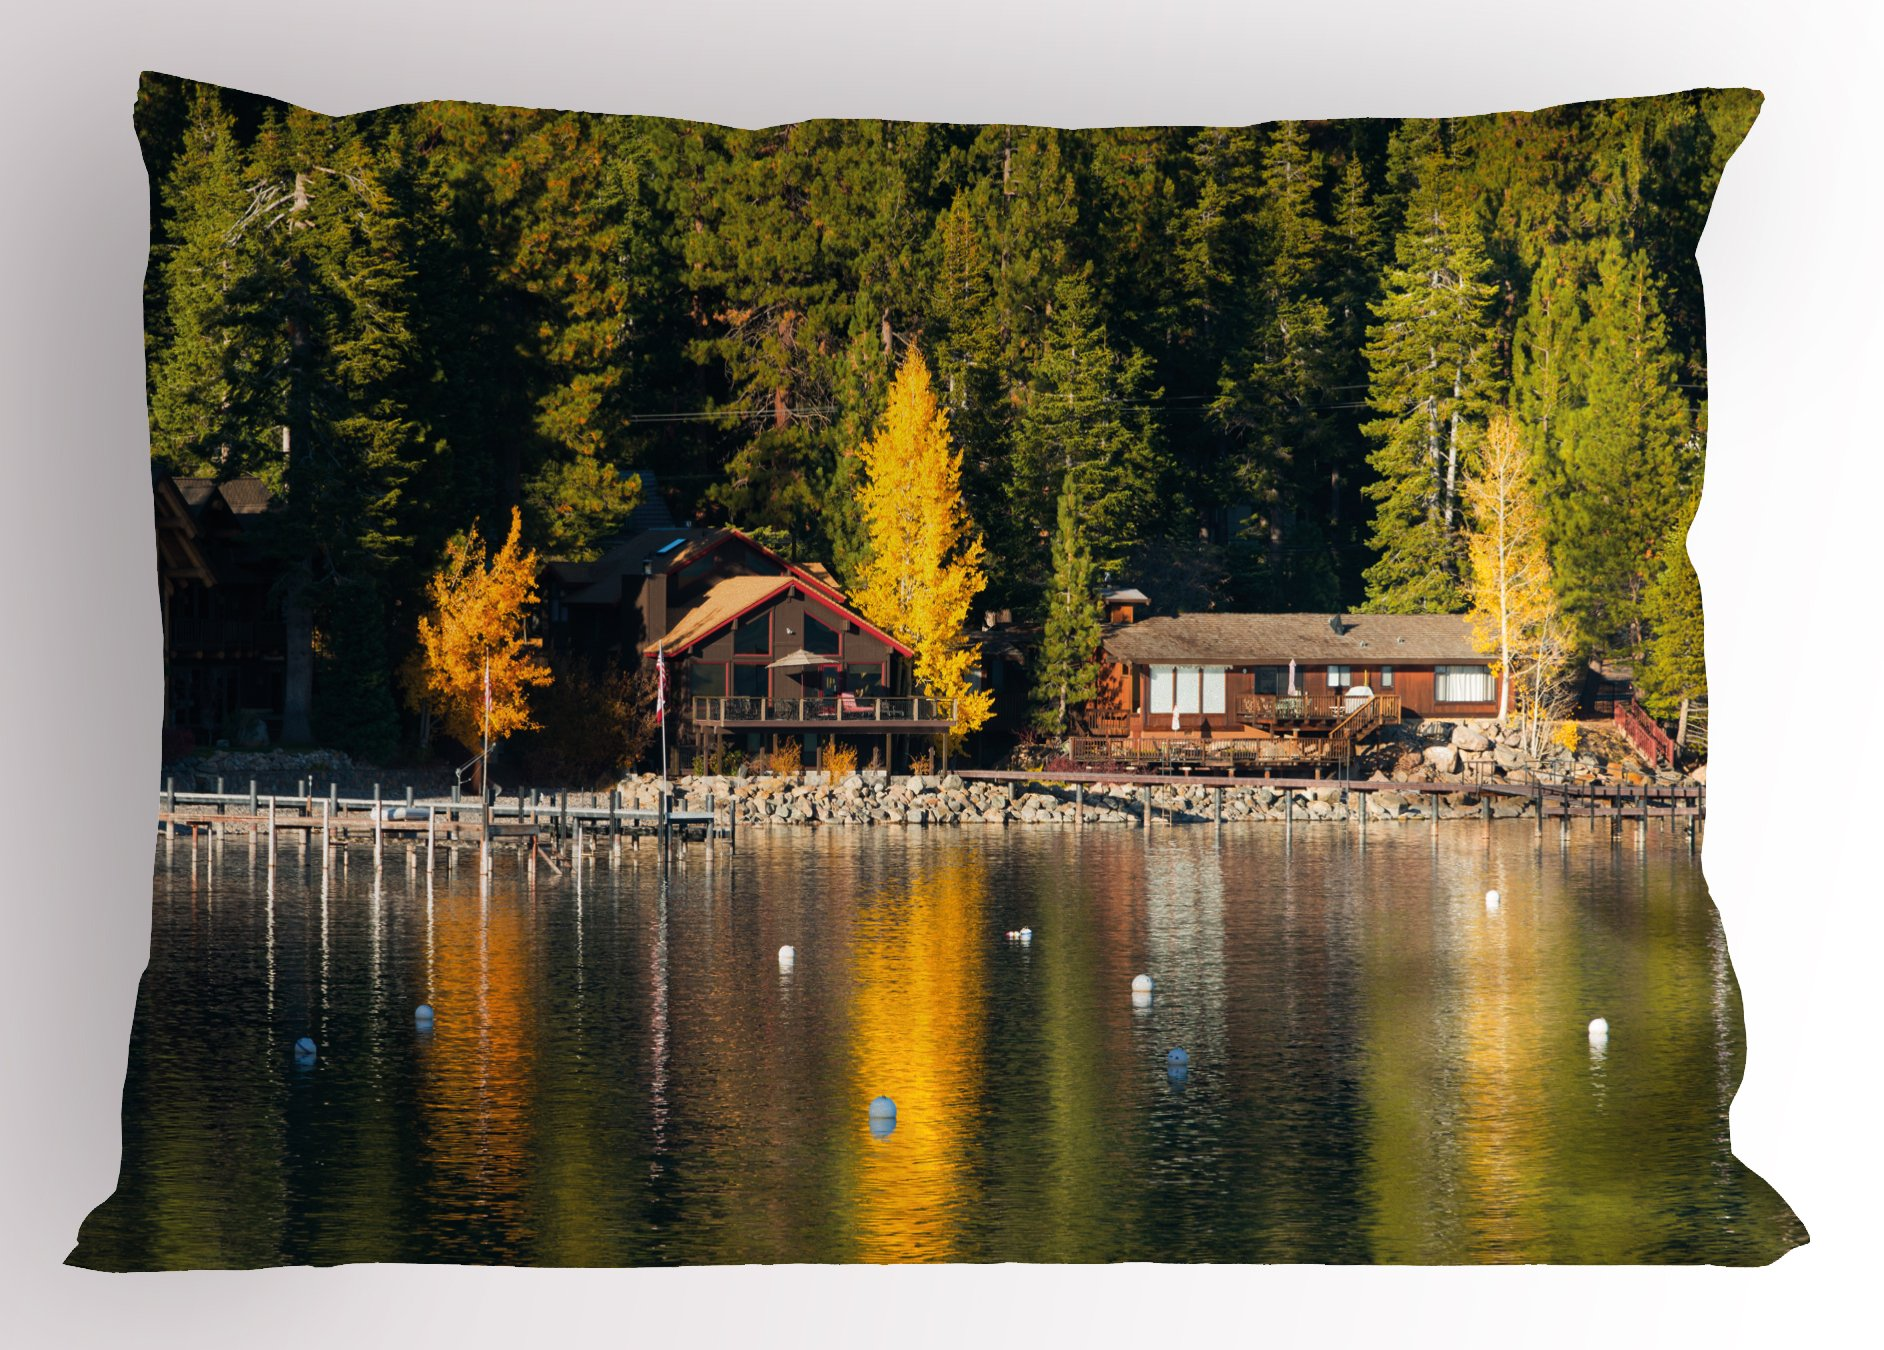 Ambesonne Lake Tahoe Pillow Sham, Carnelian Bay Photography Log Cabin in The Woods Holiday Destination Lakeside, Decorative Standard Queen Size Printed Pillowcase, 30 X 20 inches, Multicolor